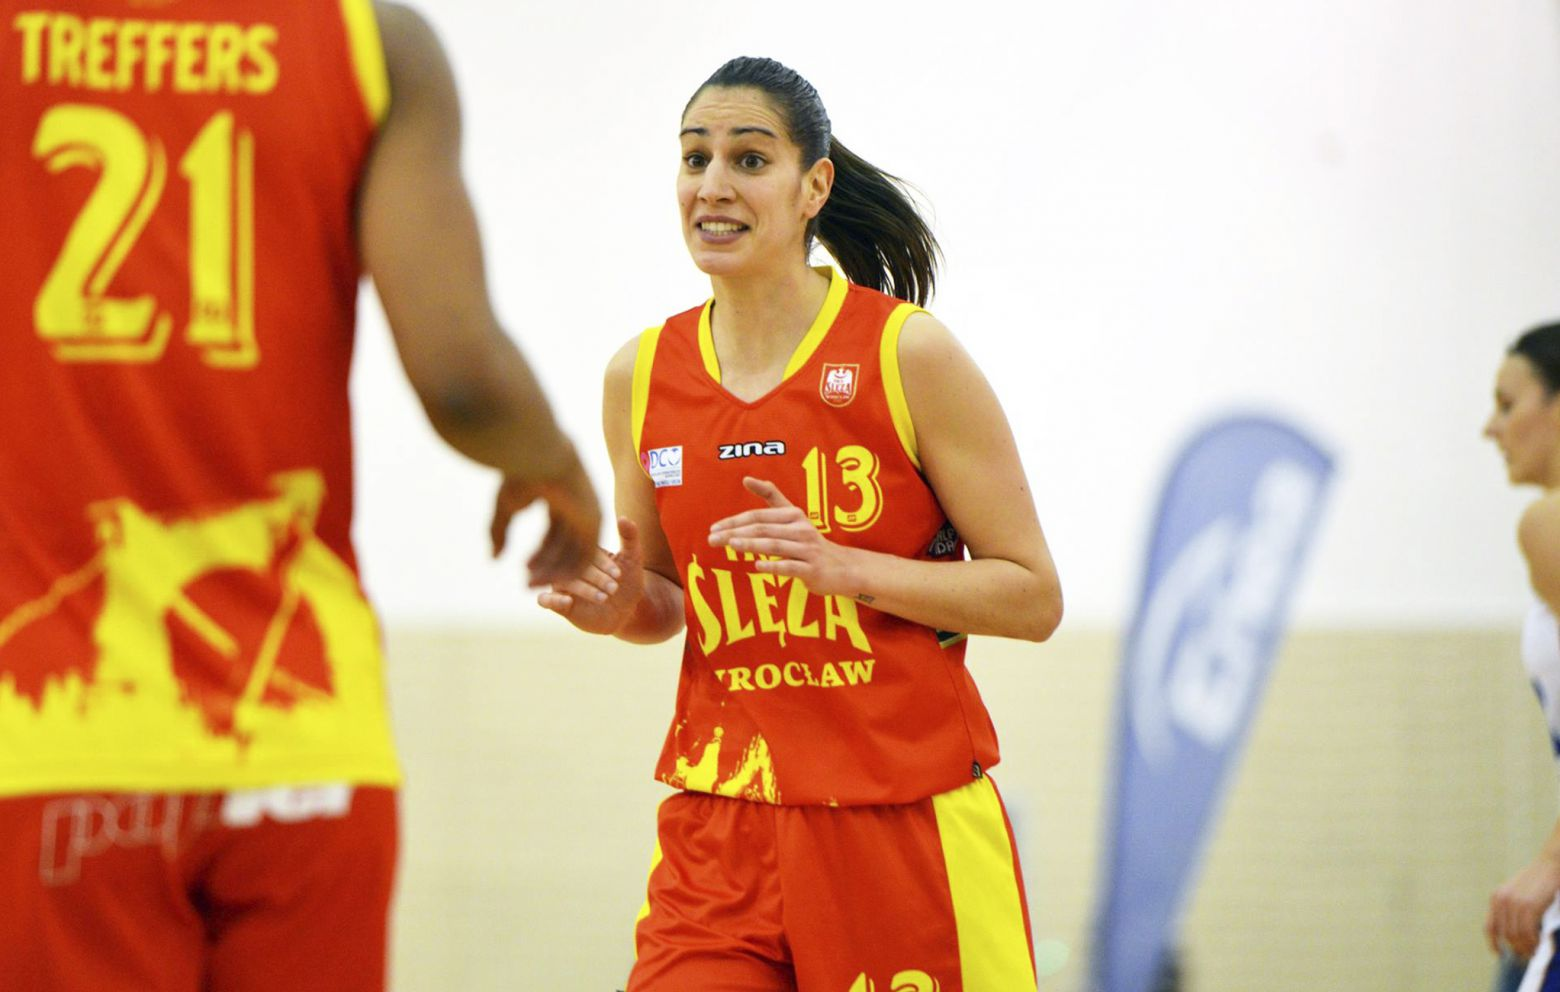 TANIA PÉREZ has signed with Mann Filter Zaragoza